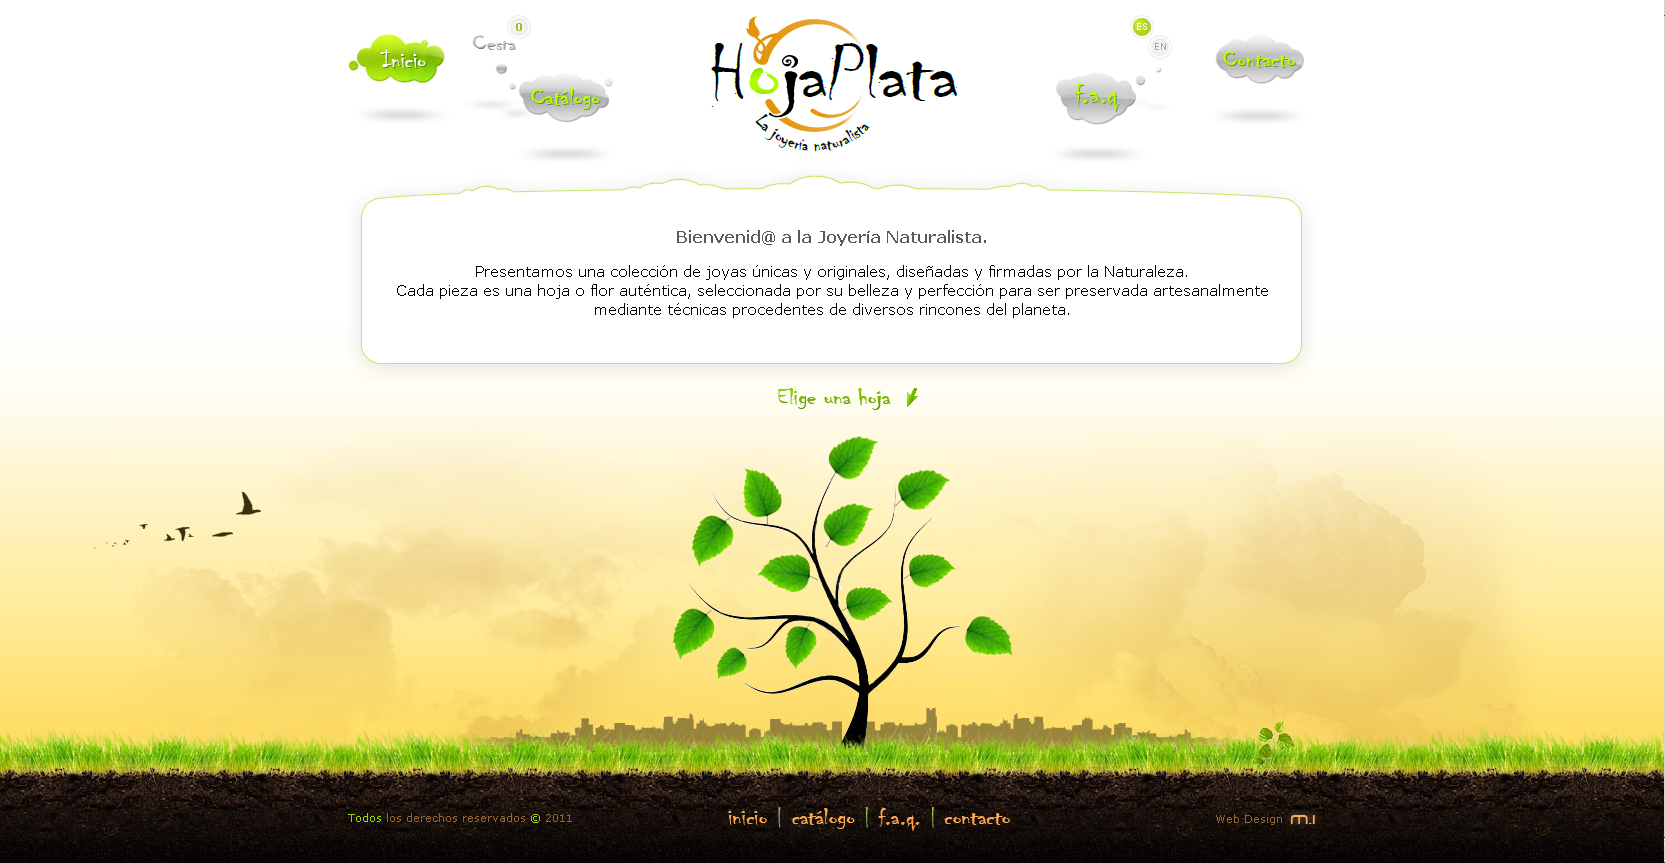 HojaPlata website - Natural jewelry